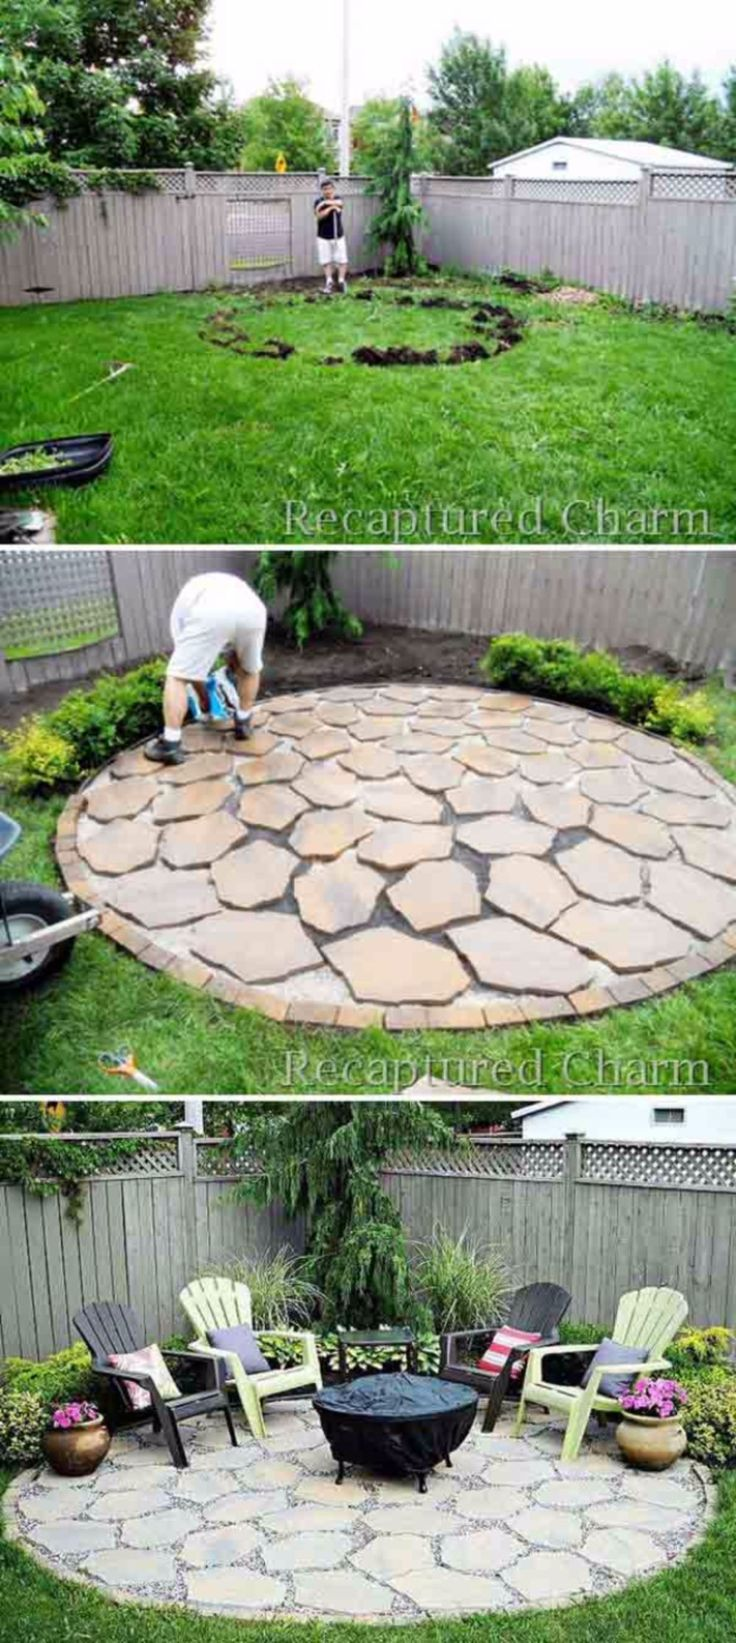 Best Patio Ideas On A Budget Ideas On Pinterest Backyard - Backyard design on a budget atlanta